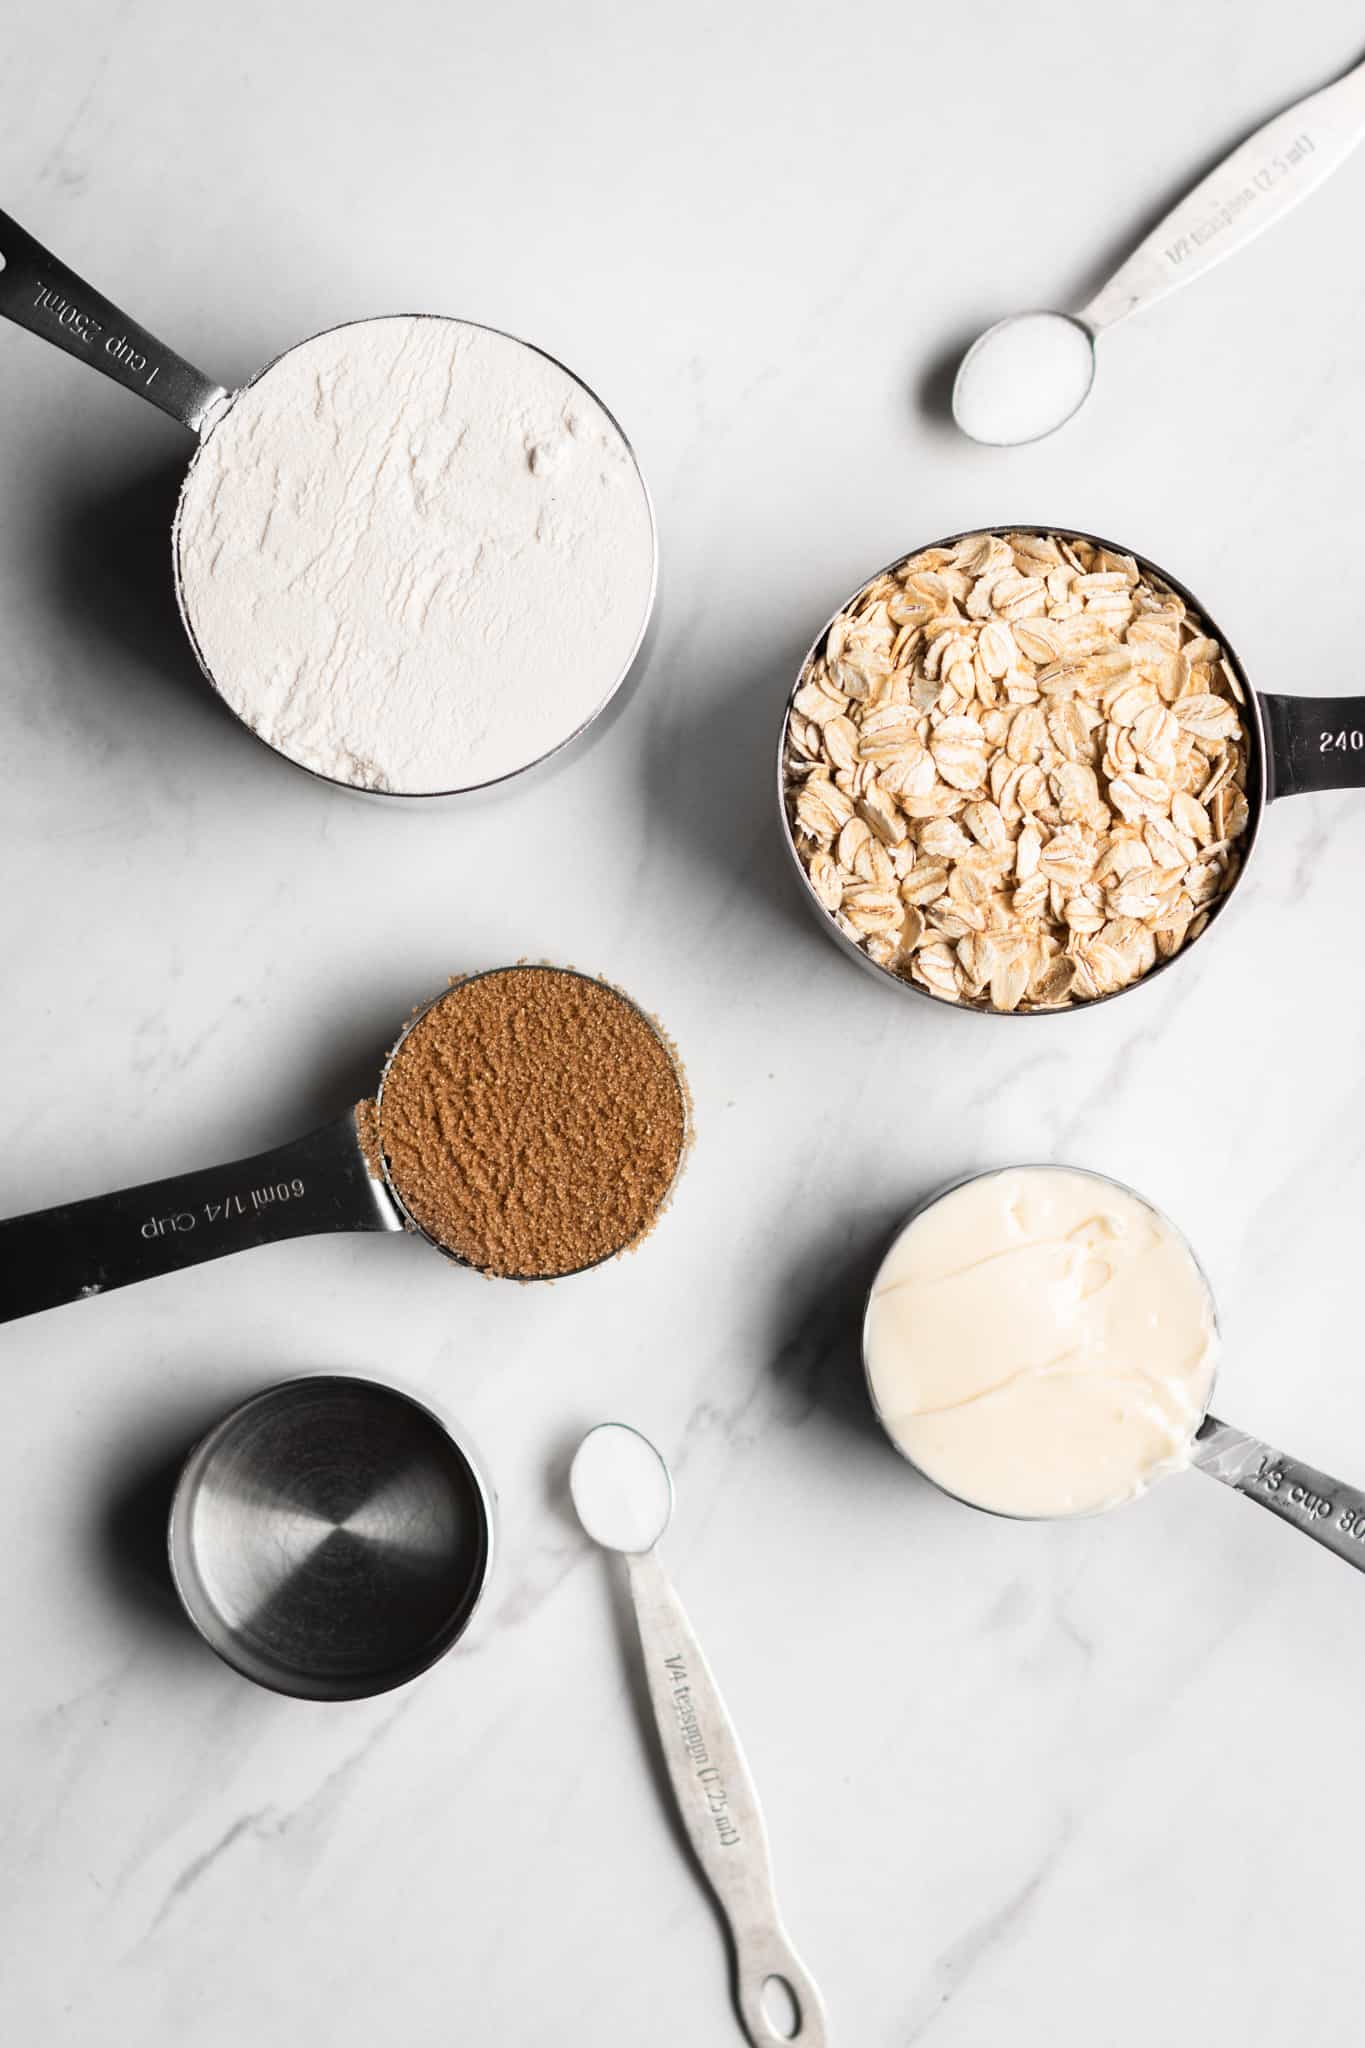 oats, flour, sugar and butter in measuring cups